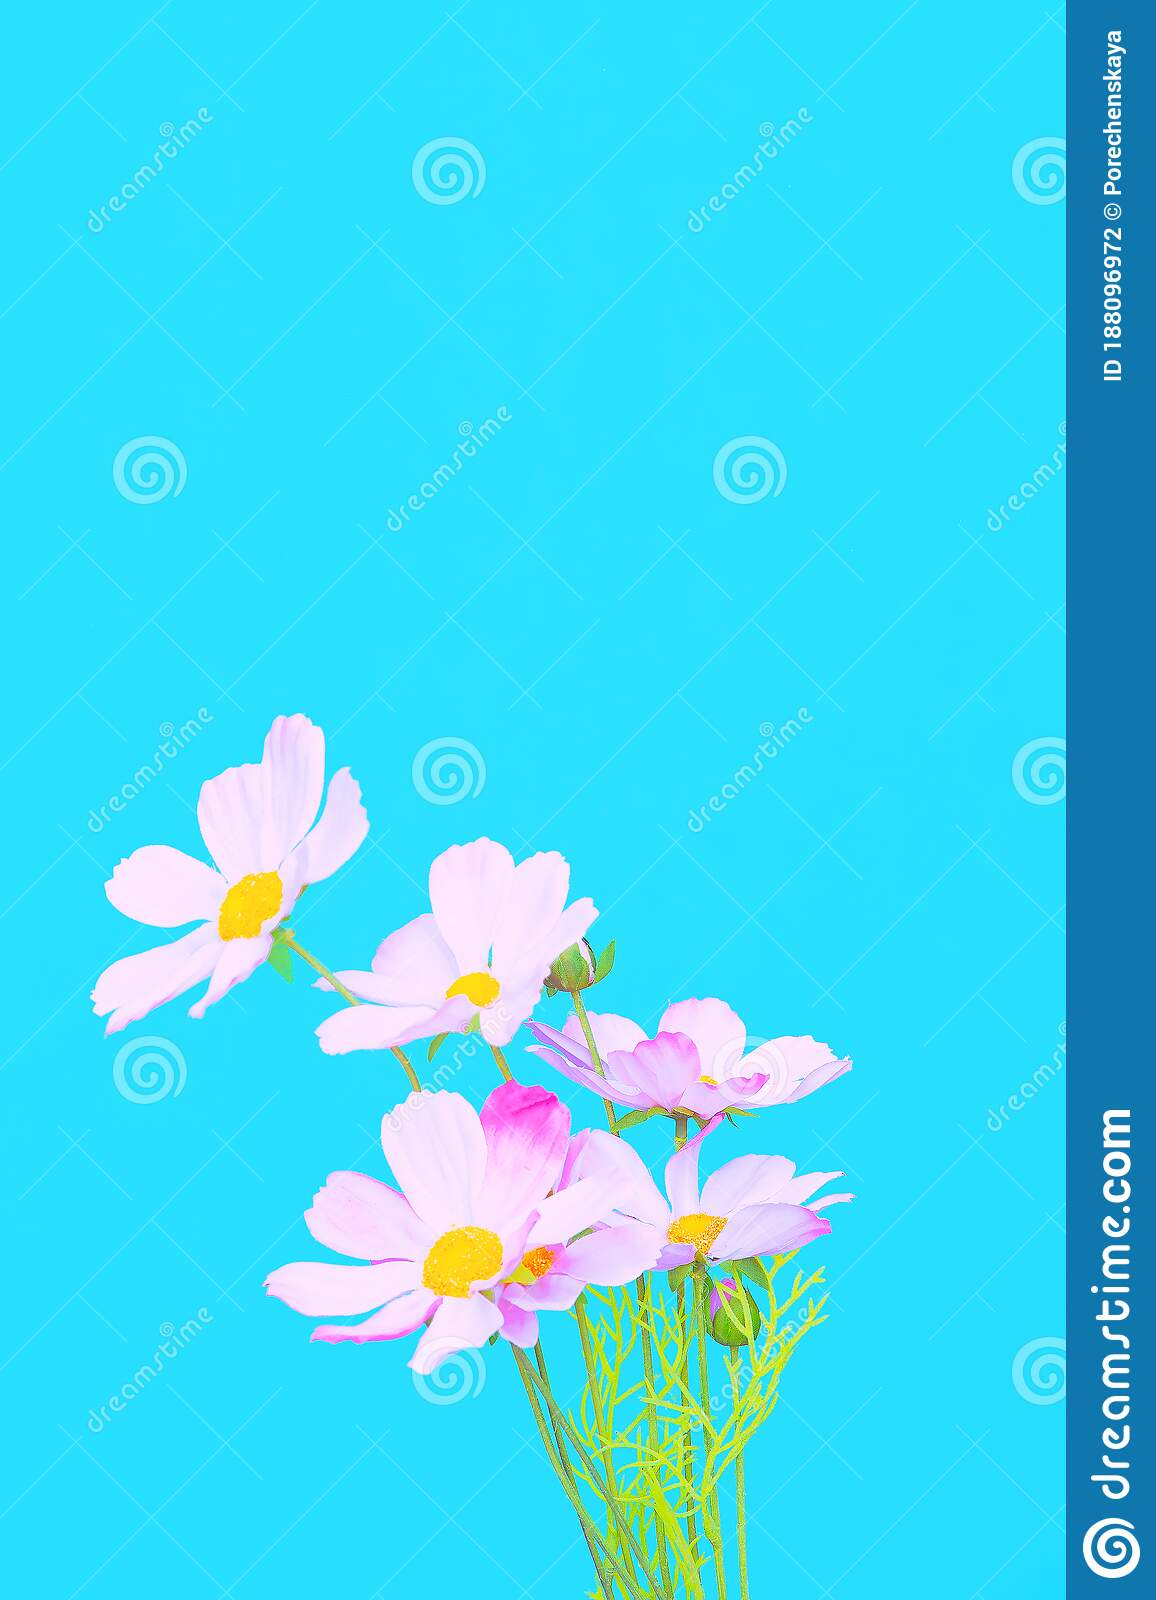 Flowers Aesthetic Wallpaper Blue Colours Trends Stock Photo Image Of Aesthetic Creative 188096972